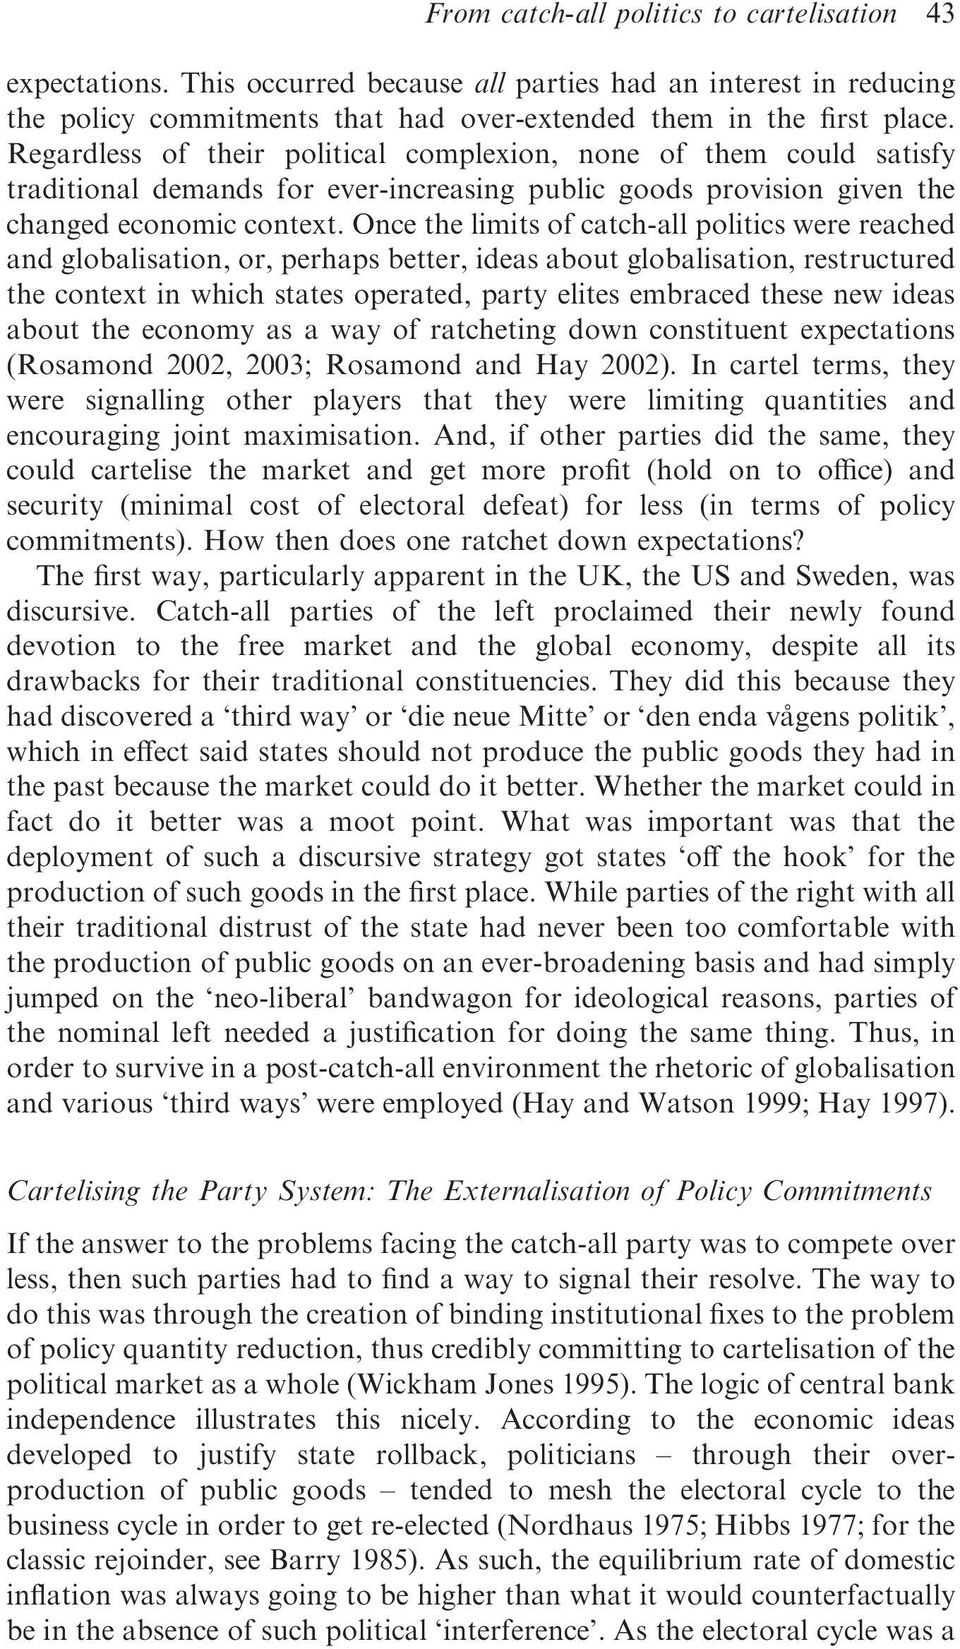 Once the limits of catch-all politics were reached and globalisation, or, perhaps better, ideas about globalisation, restructured the context in which states operated, party elites embraced these new